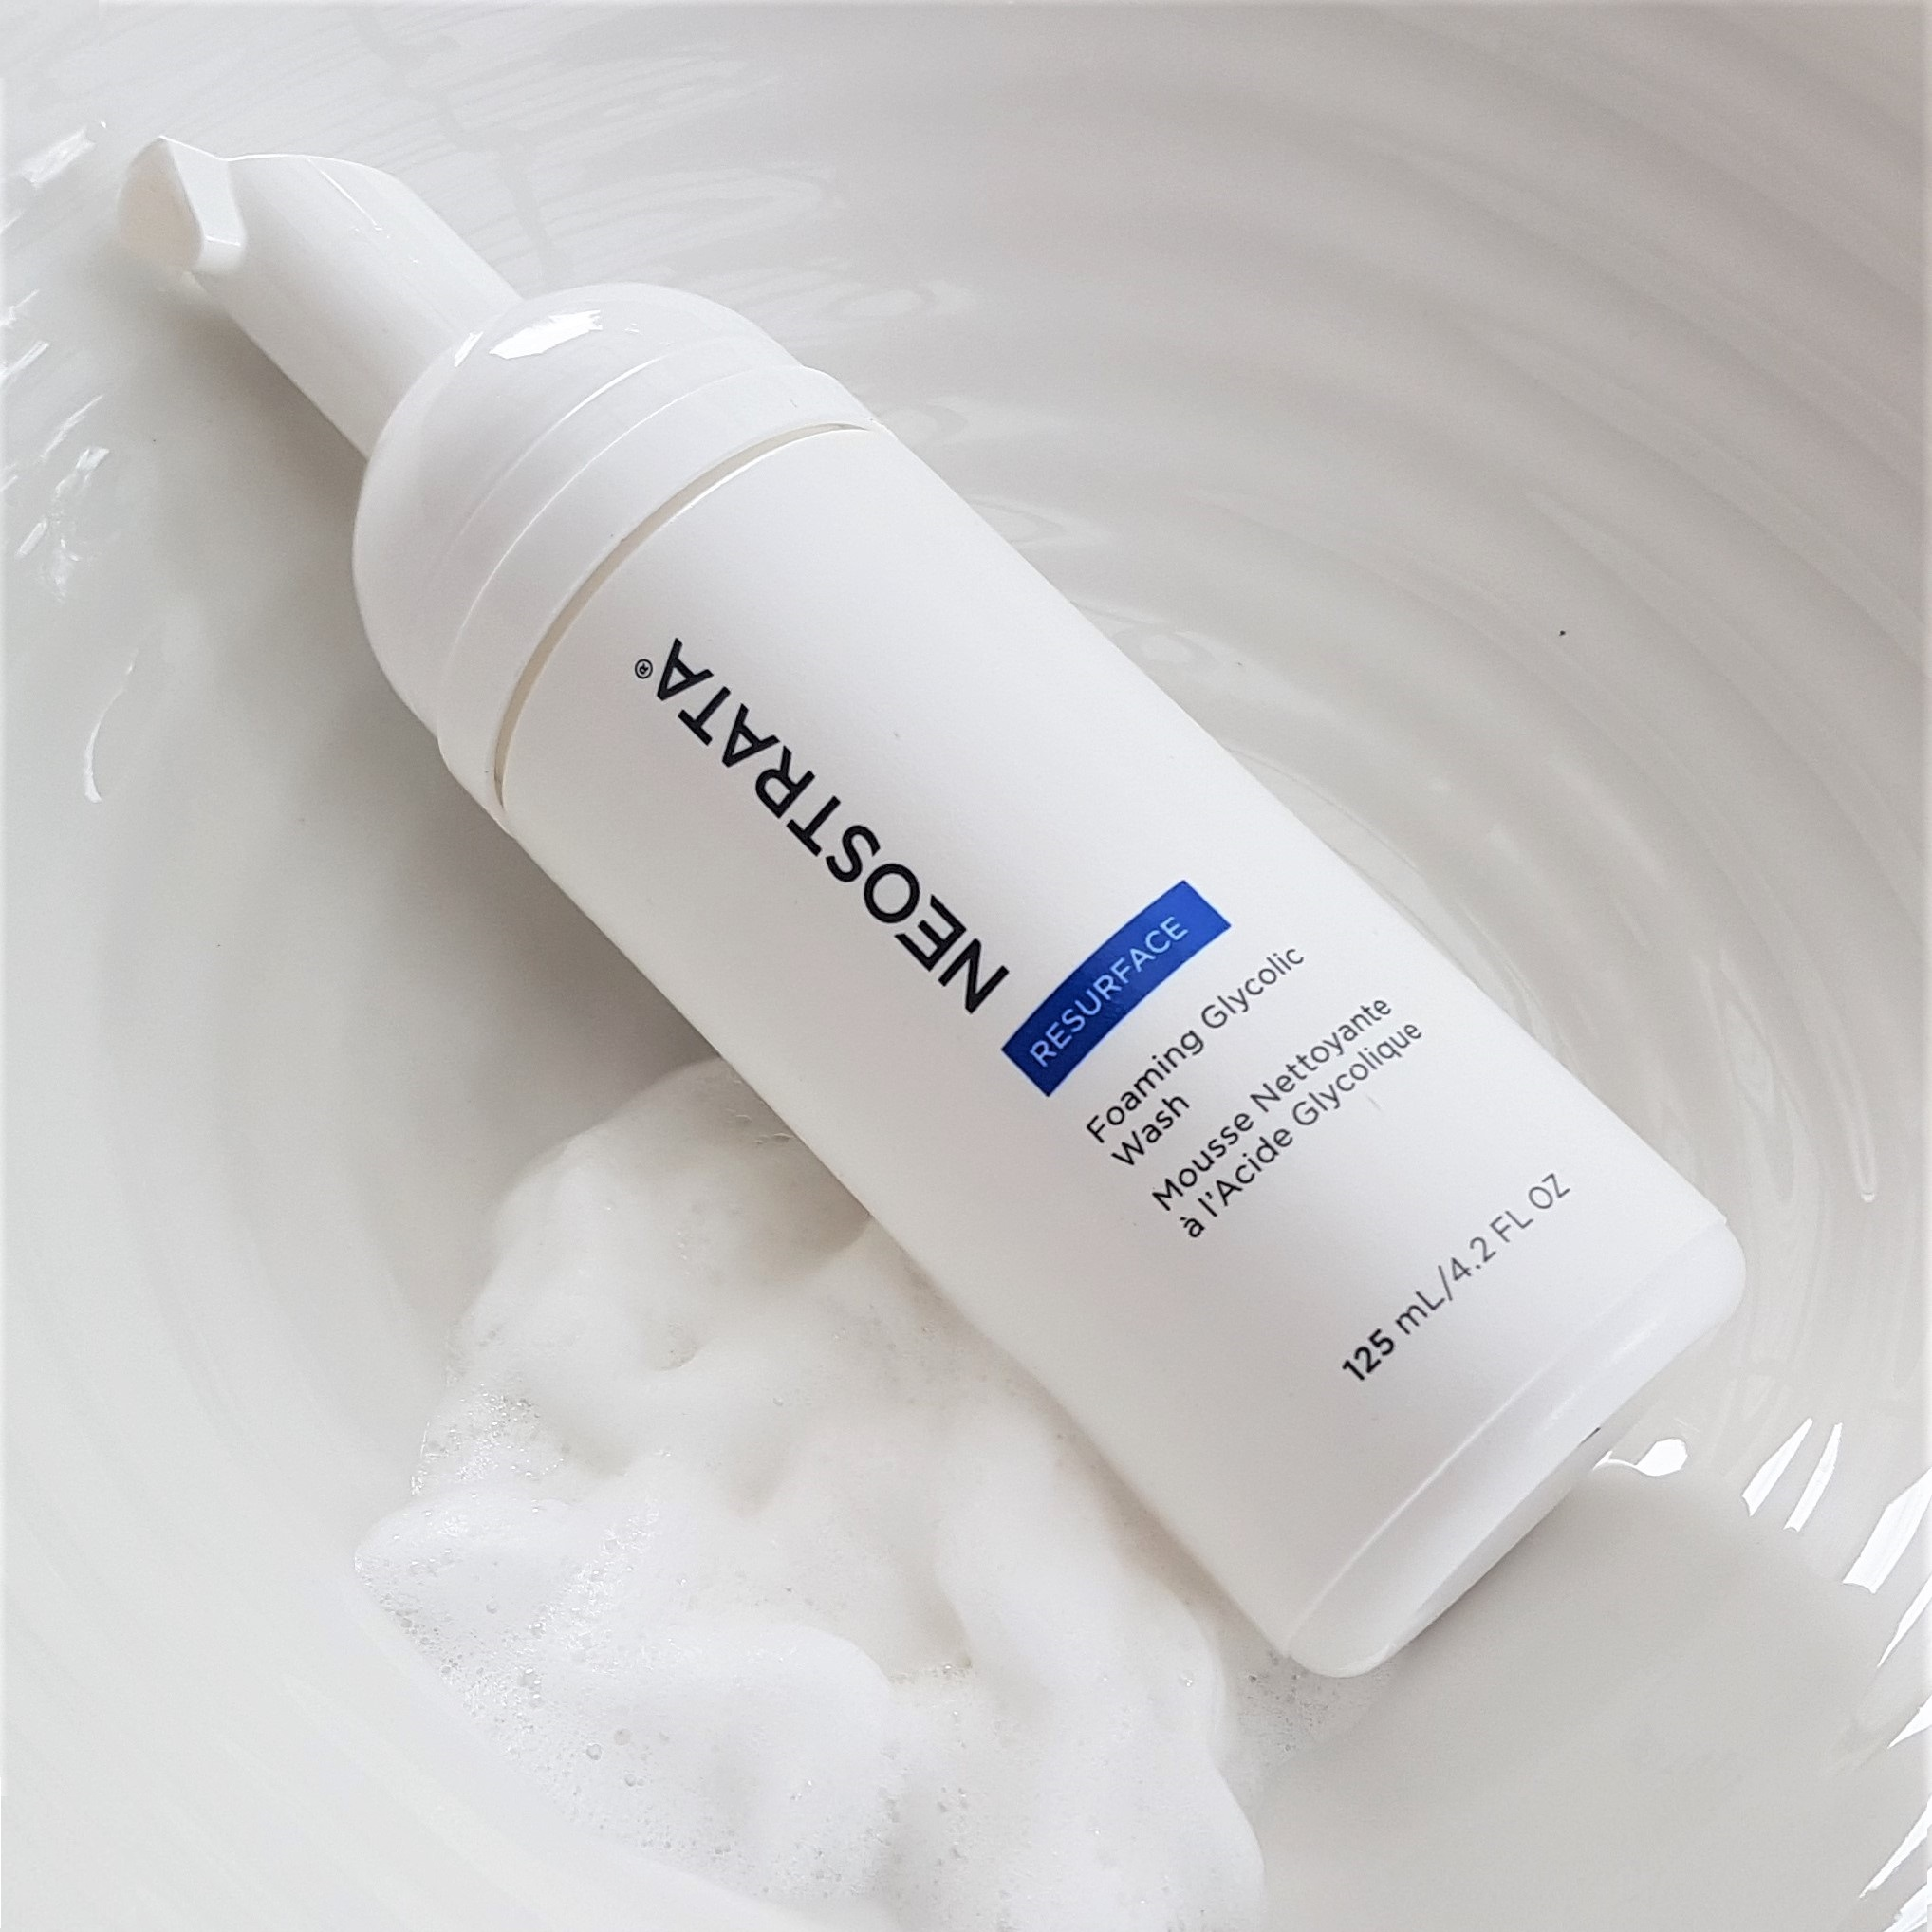 Neostrata Resurface Foaming Glycolic Wash Texture